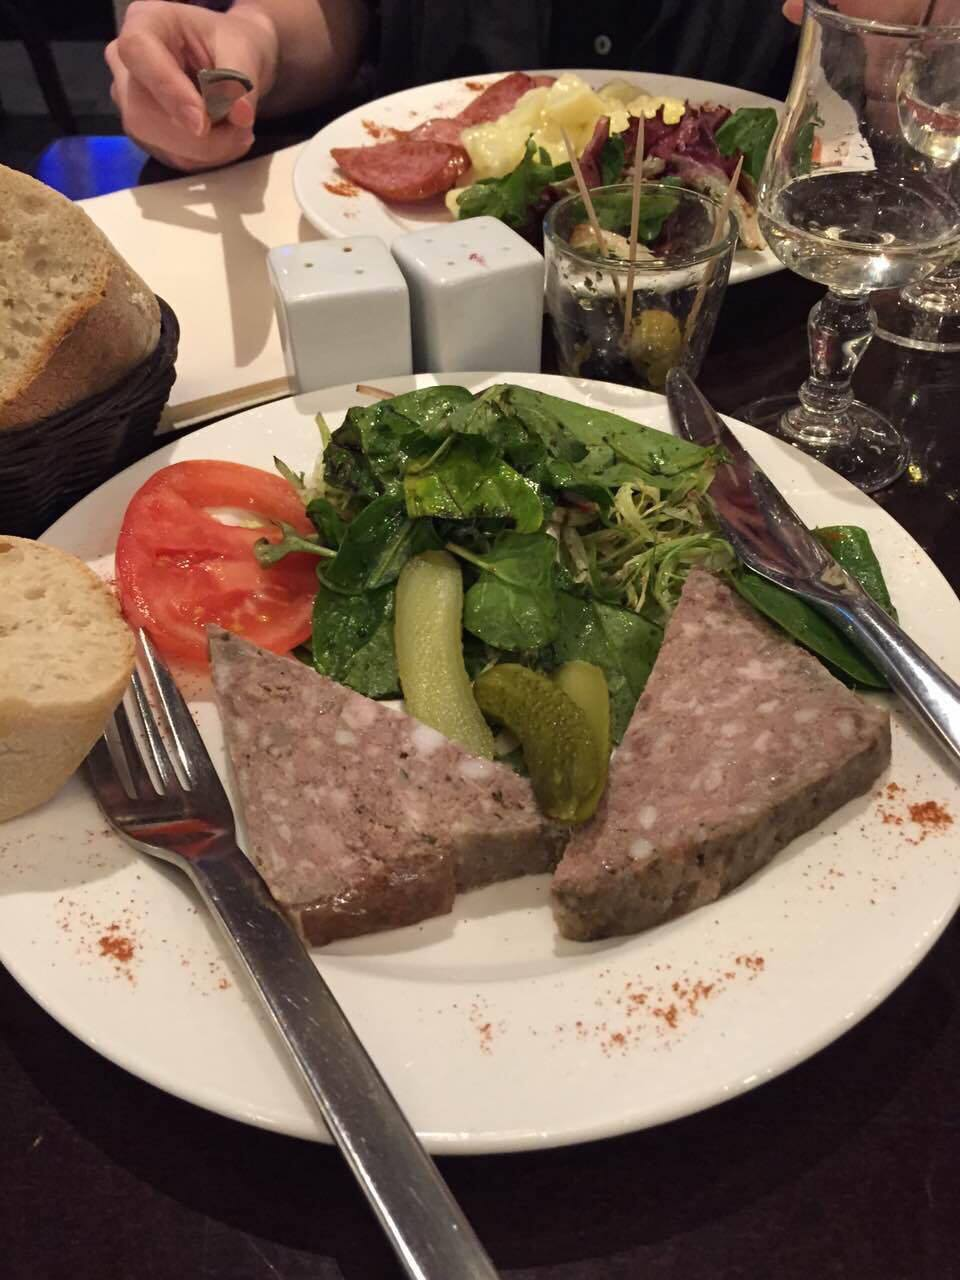 Terrine, longtime favorite though the color may not be the most appealing